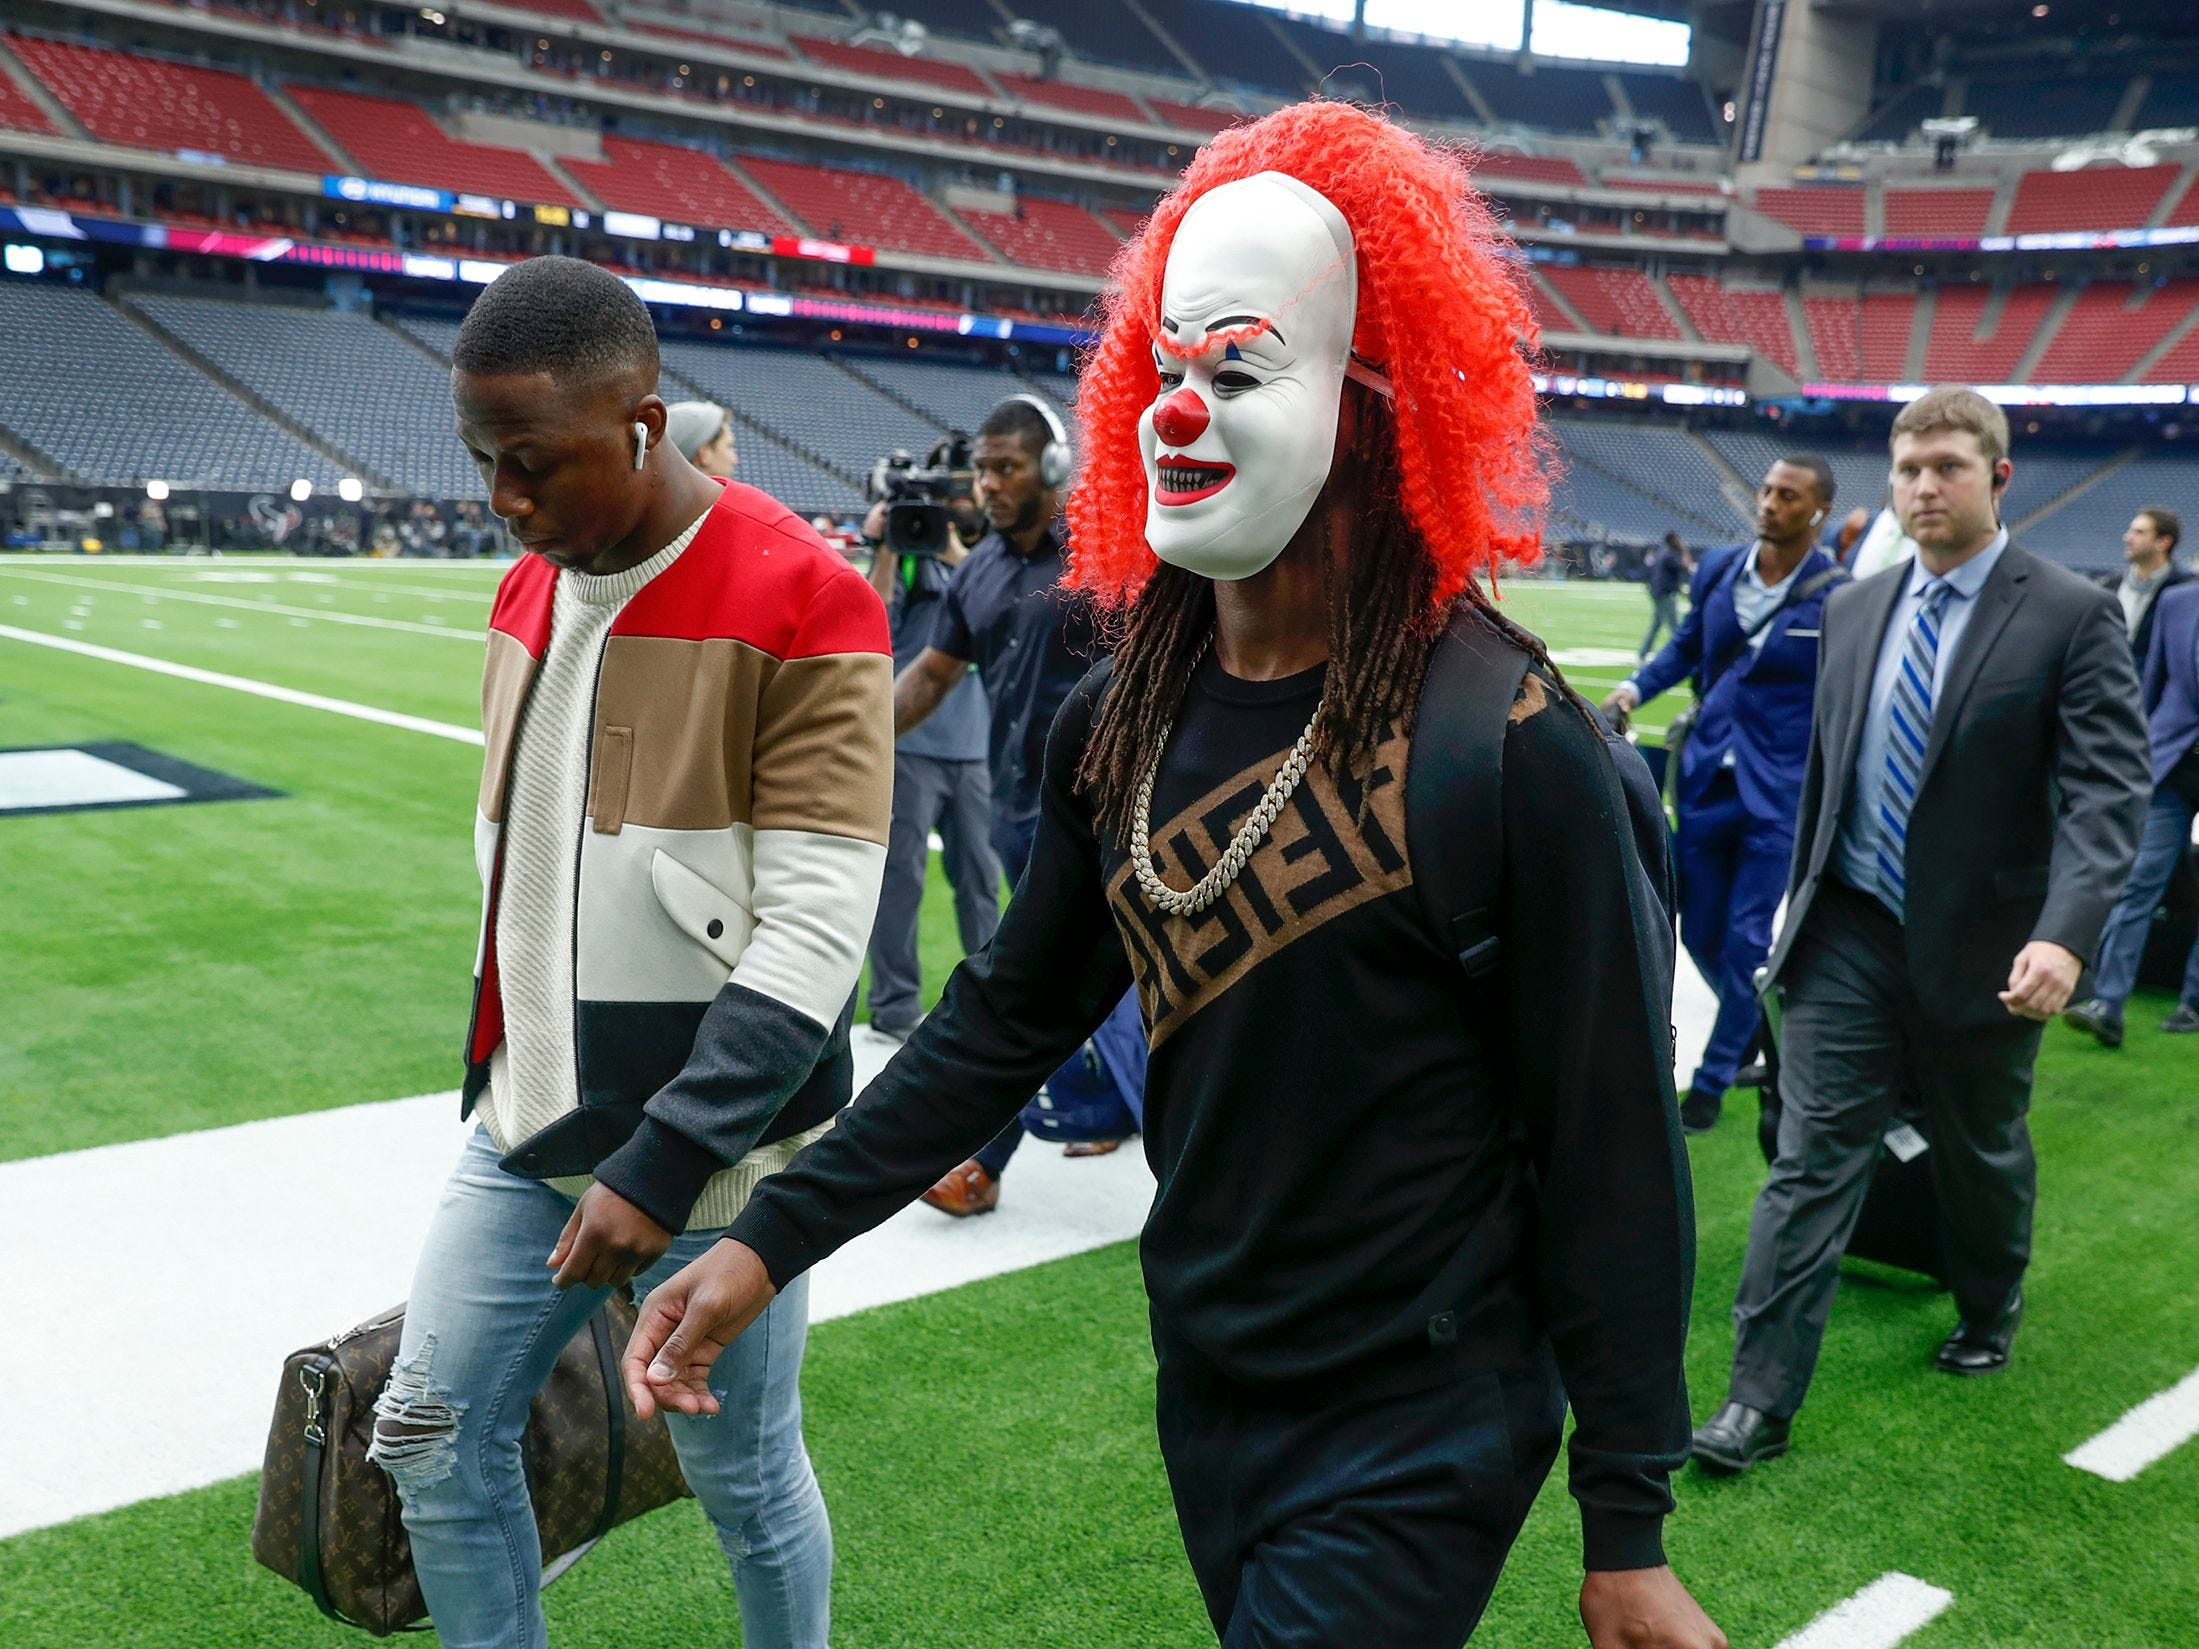 Indianapolis Colts wide receiver T.Y. Hilton (13) wears a clown mask as he and his teammates arrive for a AFC Wild Card playoff football game against the Houston Texans at NRG Stadium.